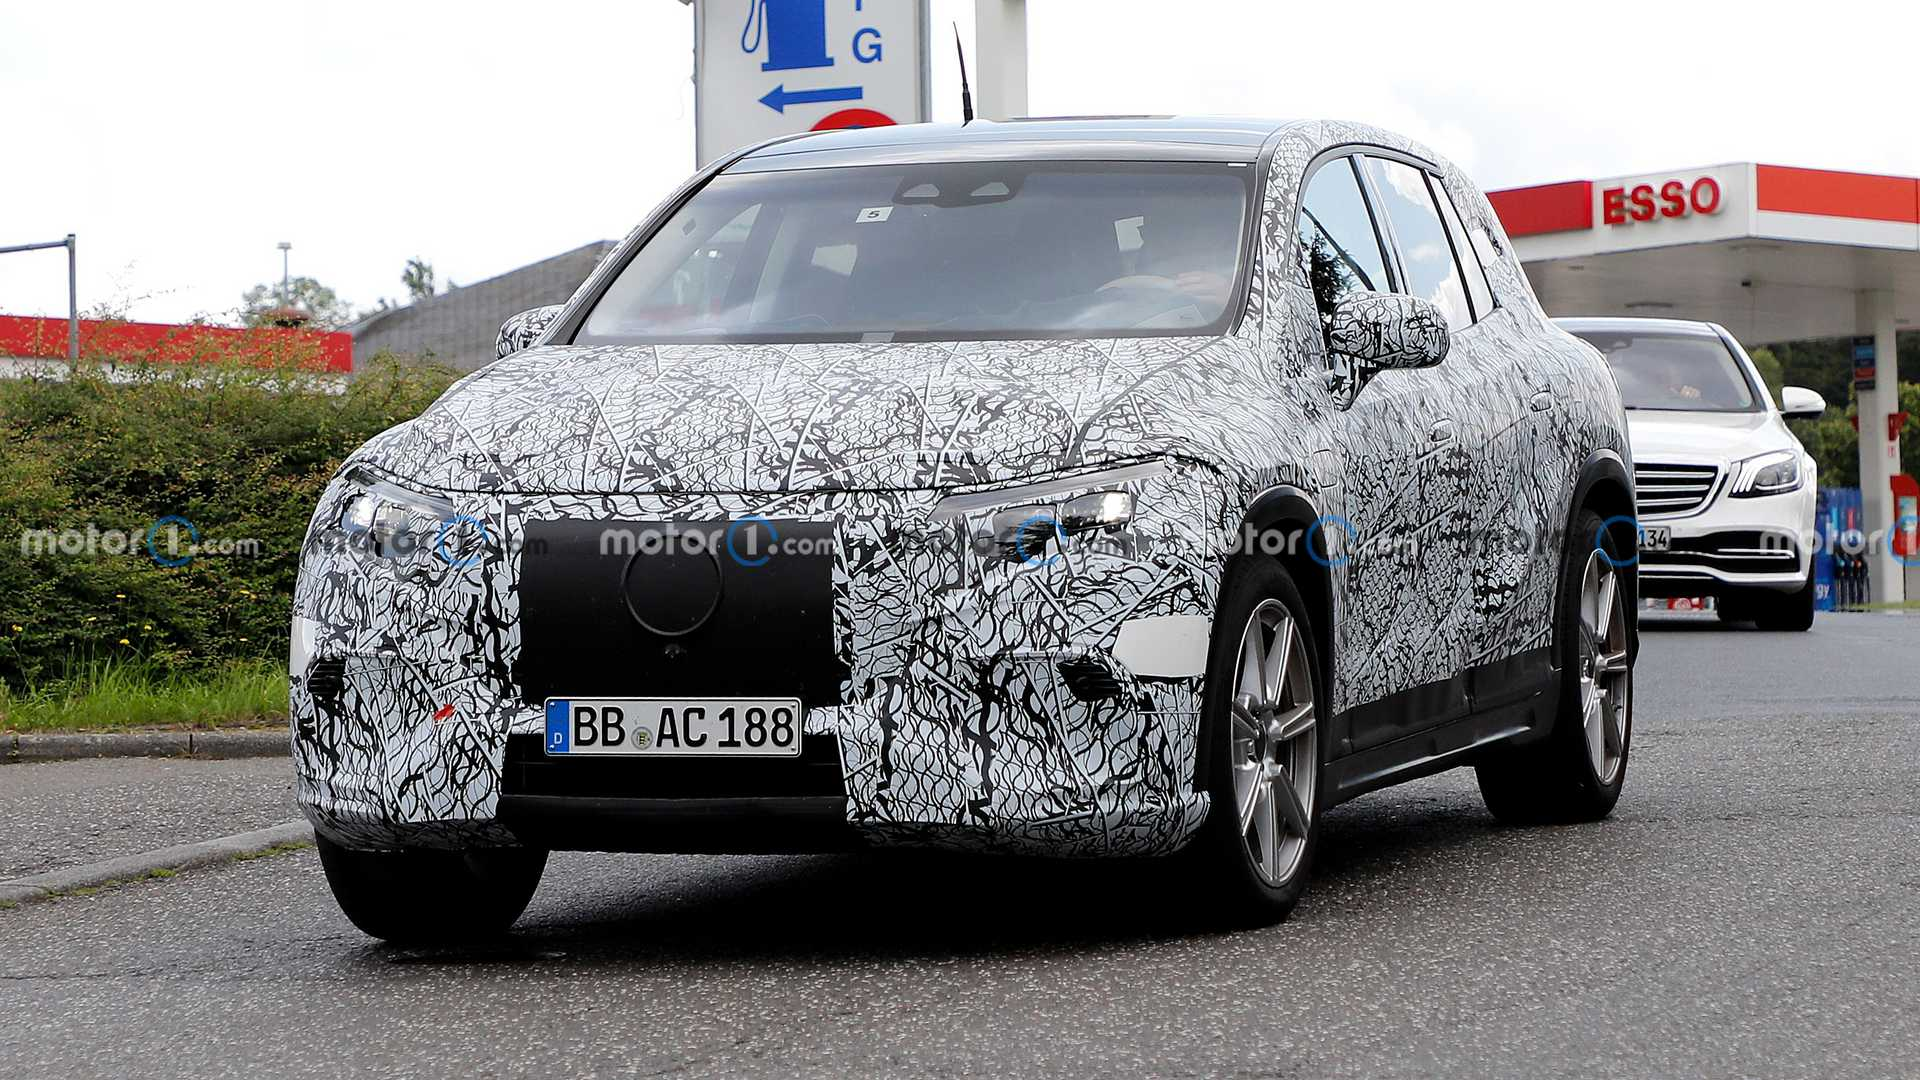 Mercedes' latest full-size, all-electric SUV – the EQS – has been spied and photographed multiple times already, but the latest bunch of photos reveals more than any of the previous ones did.